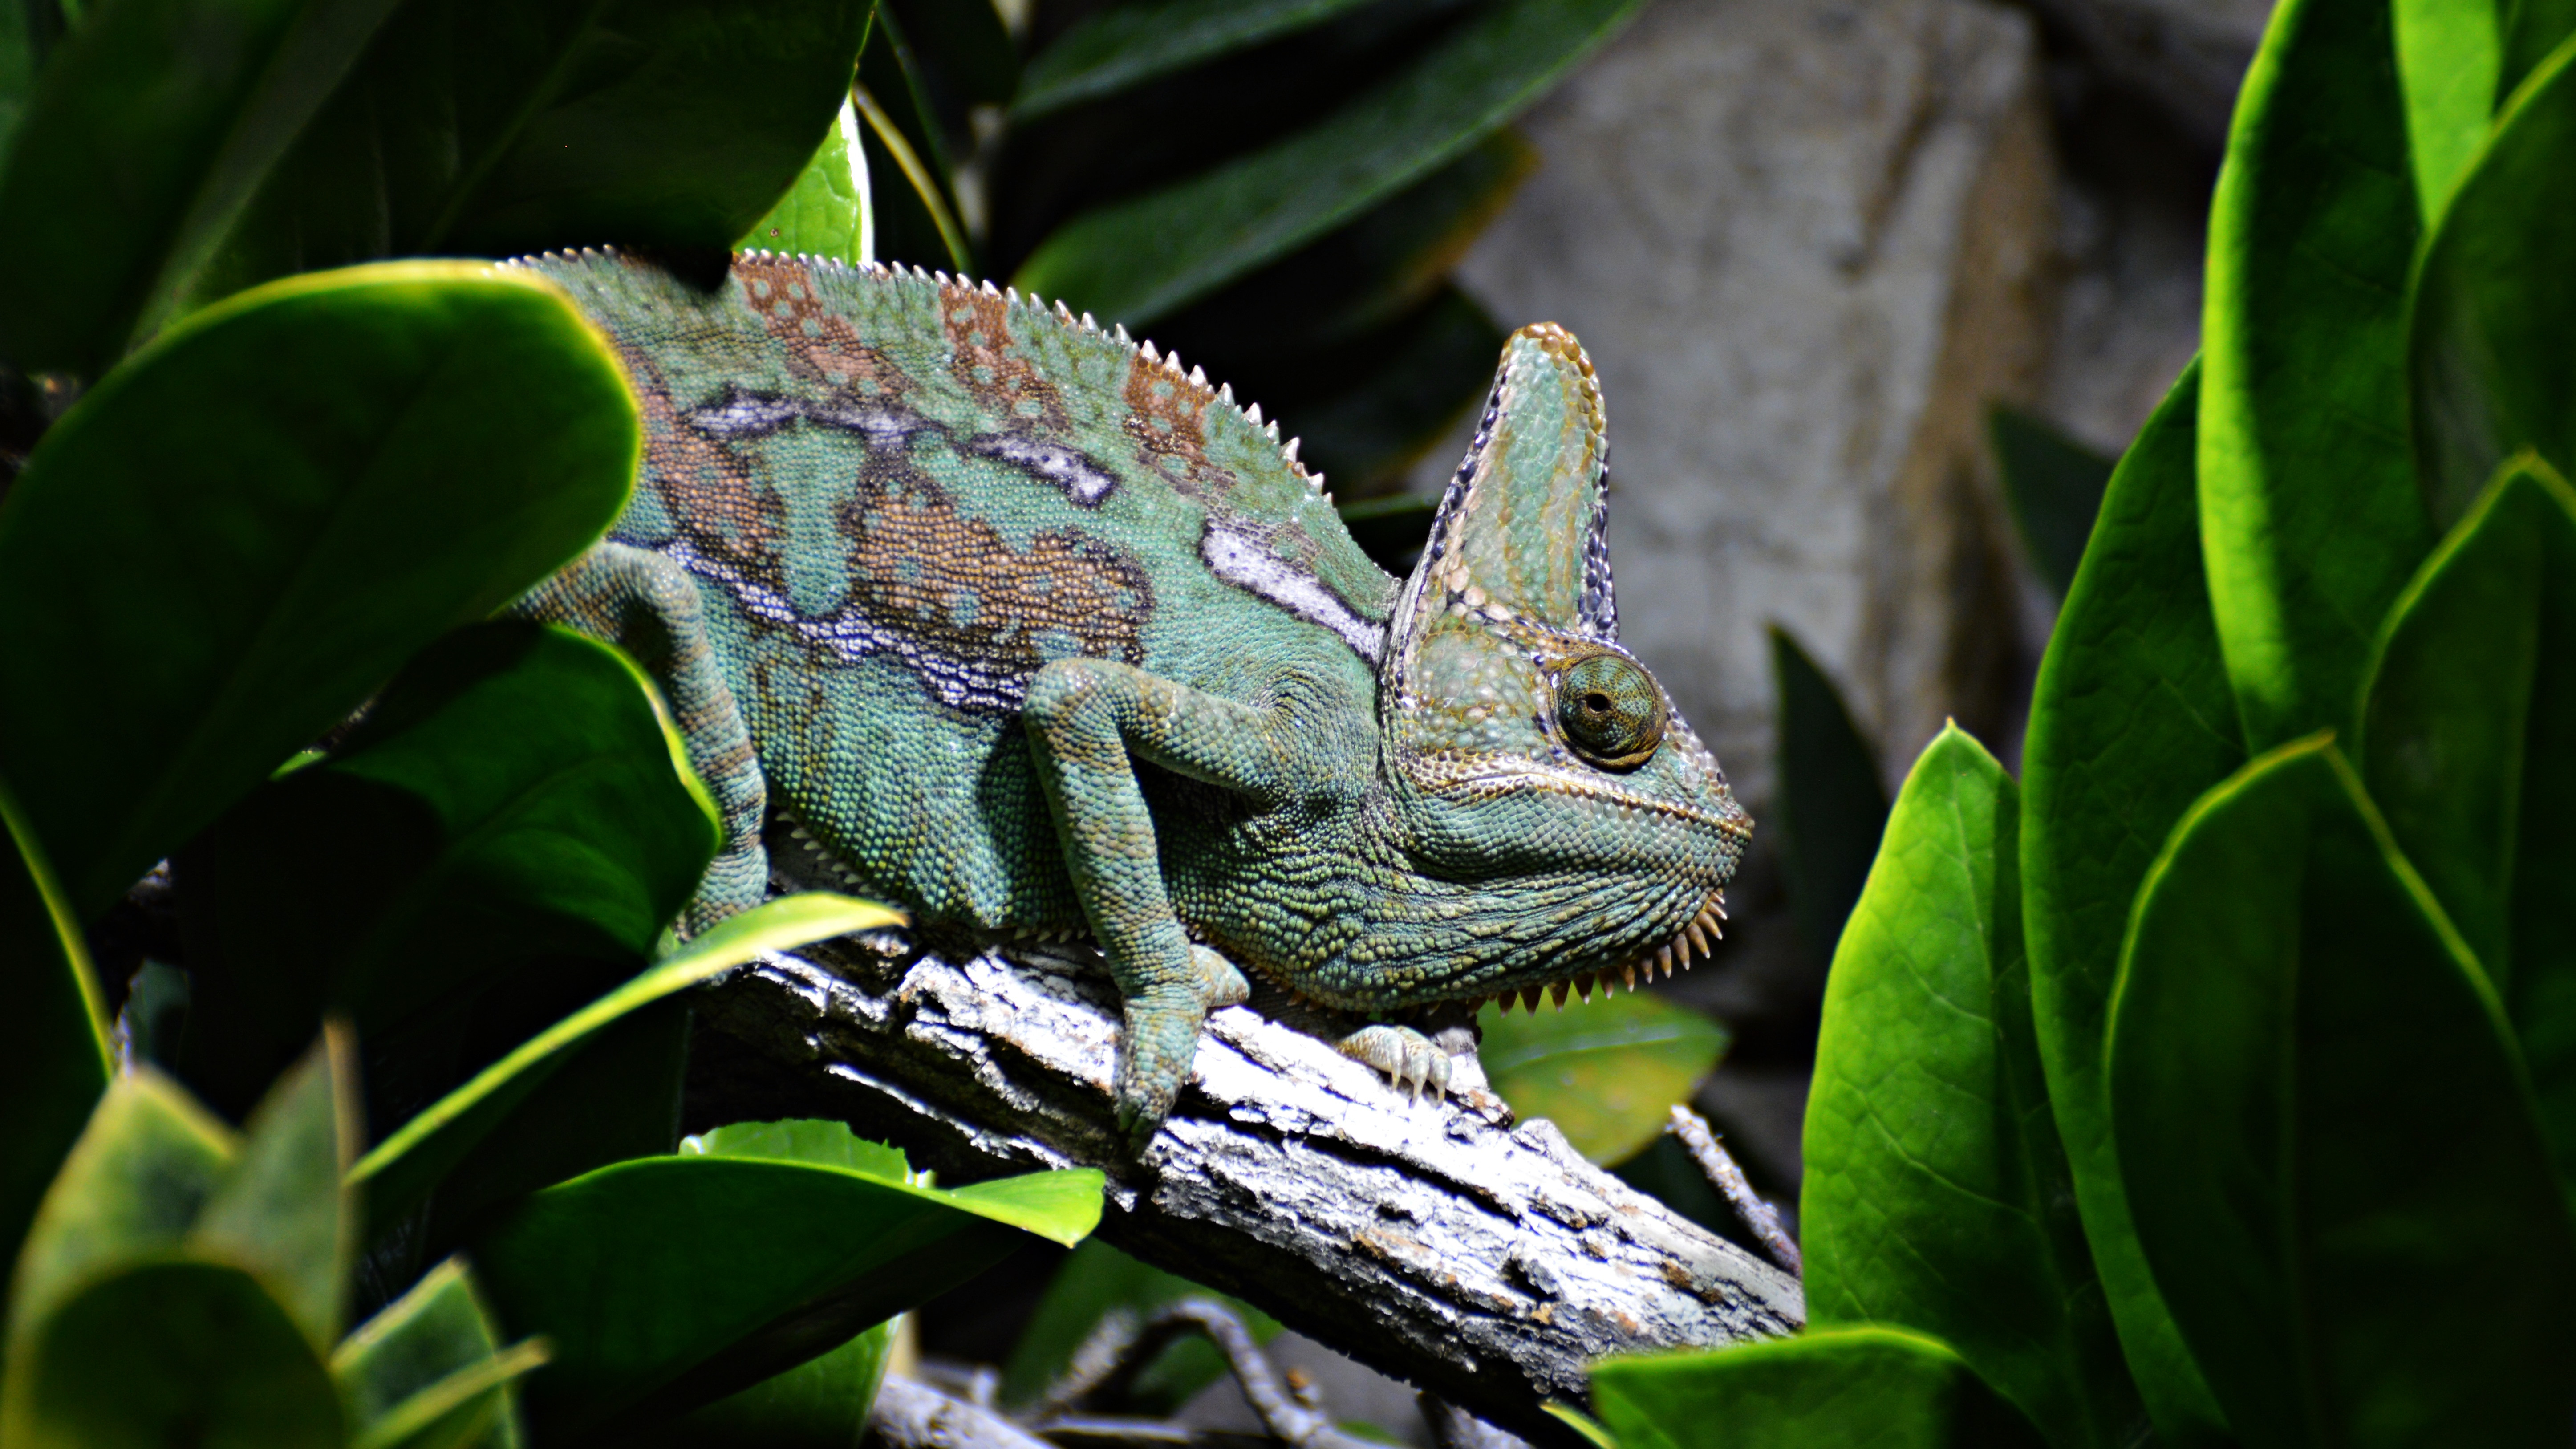 65614 download wallpaper Animals, Reptile, Chameleon, Profile, Animal screensavers and pictures for free